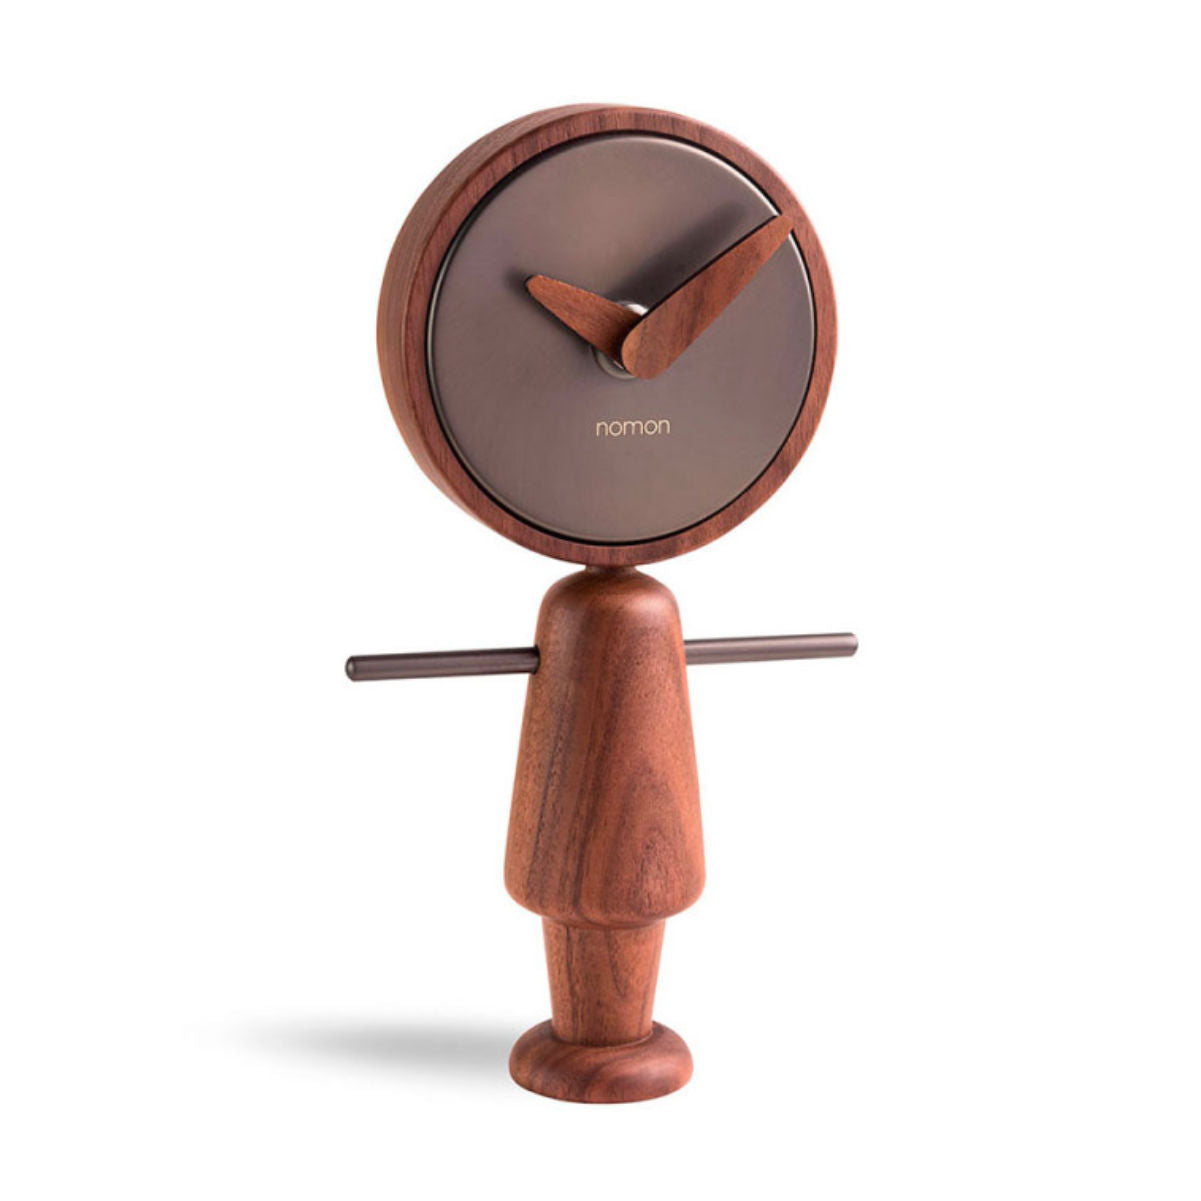 Nomon Nene-Nena table clock